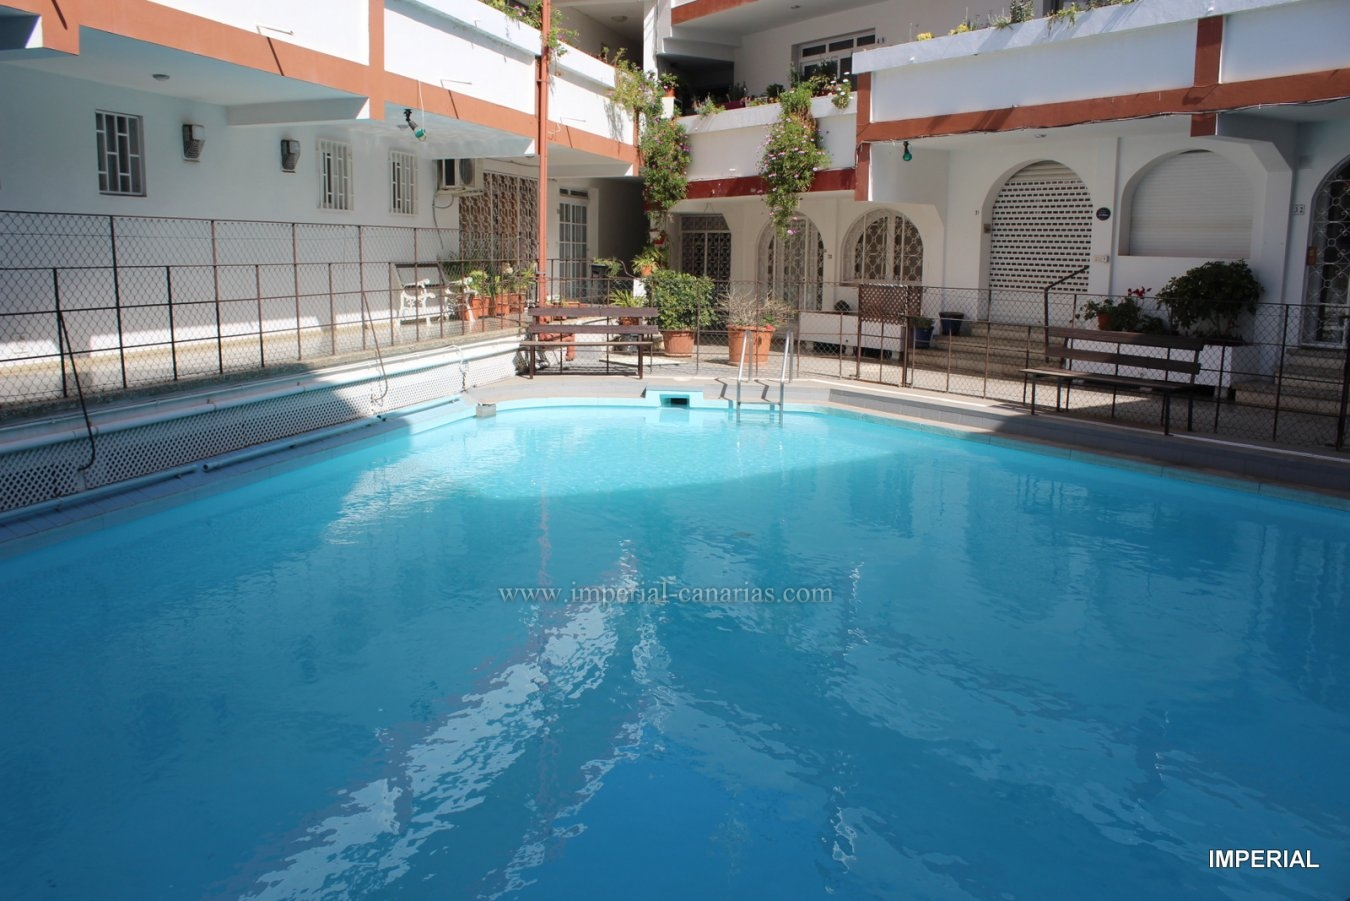 Cosy  and confortable apartment in Puerto de la Cruz, with communal pool in San Fernando area near the Clinic Bellevue Clinic and Taoro Park.